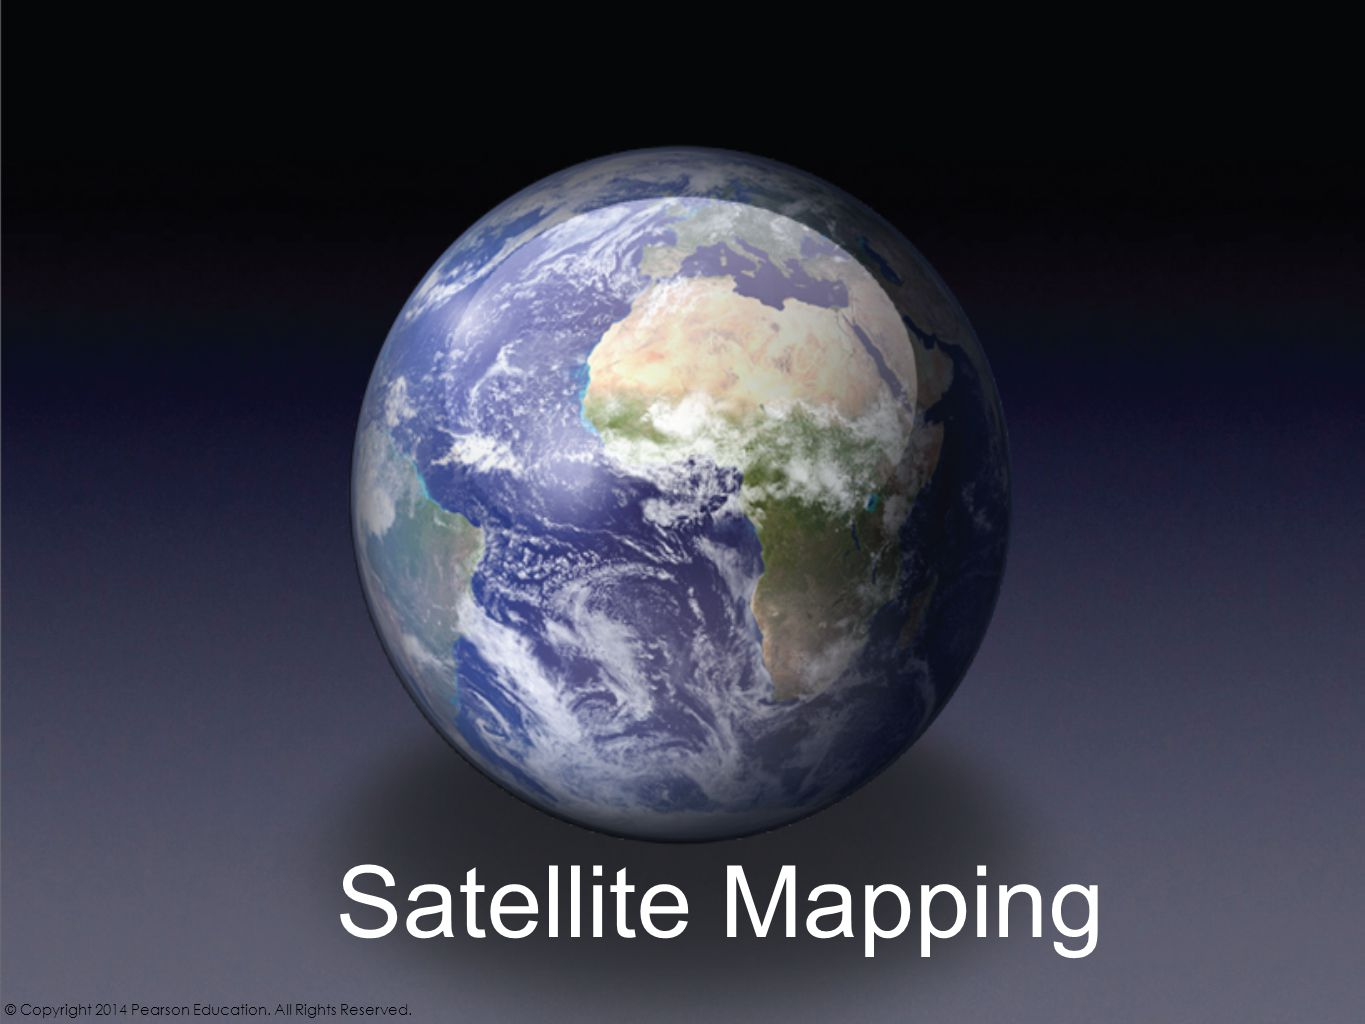 Satellite Mapping © Copyright 2014 Pearson Education. All Rights Reserved.